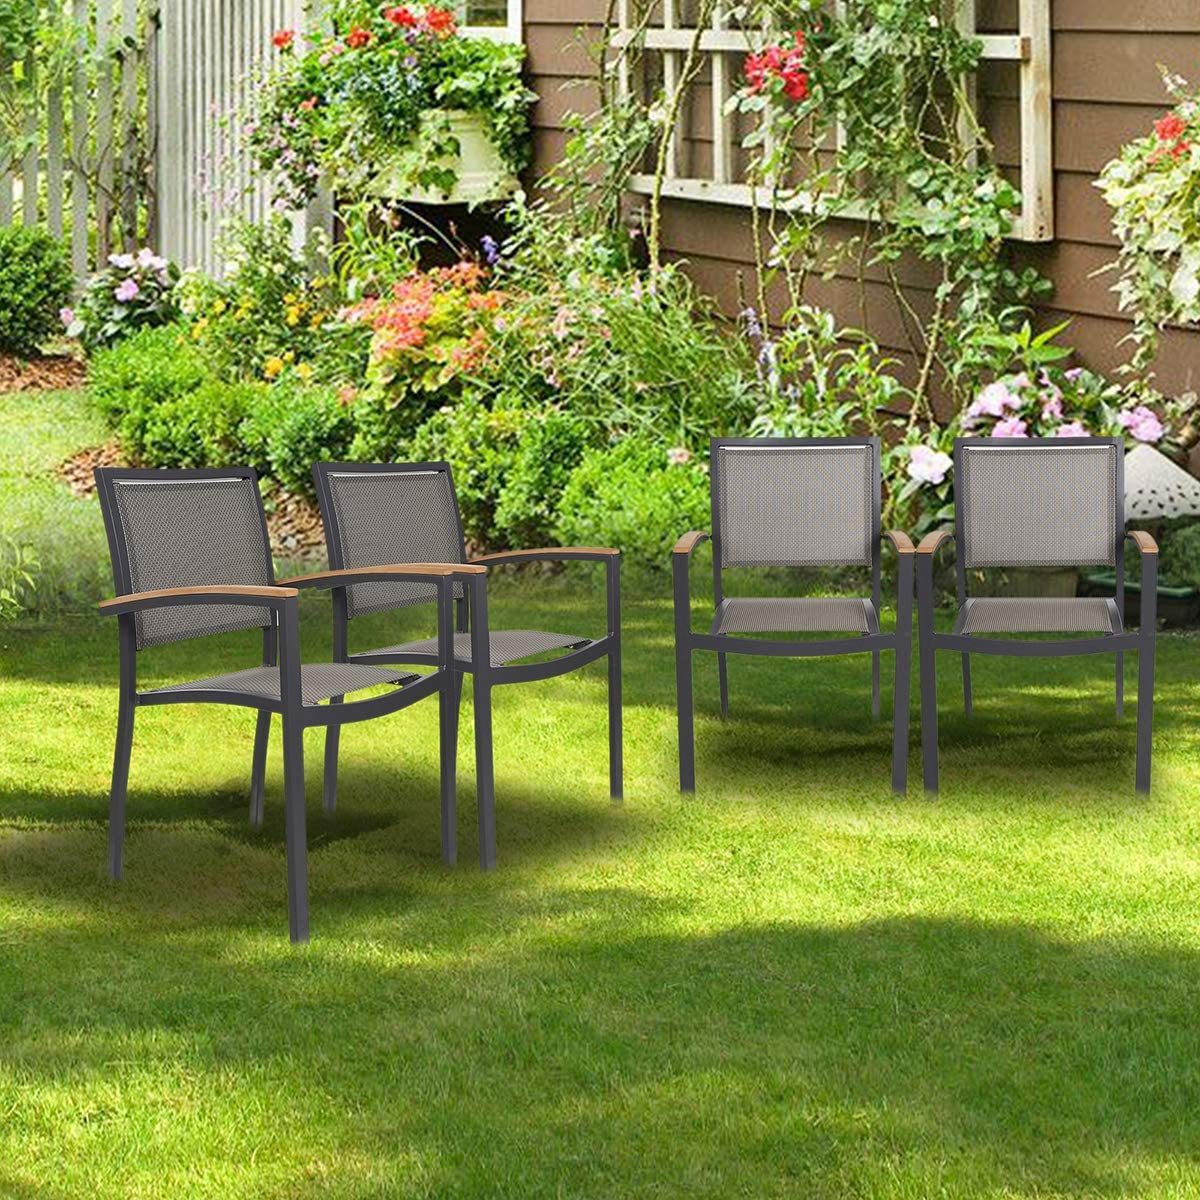 KARMAS PRODUCT 4 Pack Stackable Indoor/Outdoor Patio Dining Chairs with Teak Armrest,Textilene Mesh Fabric Aluminum Frame,Gray